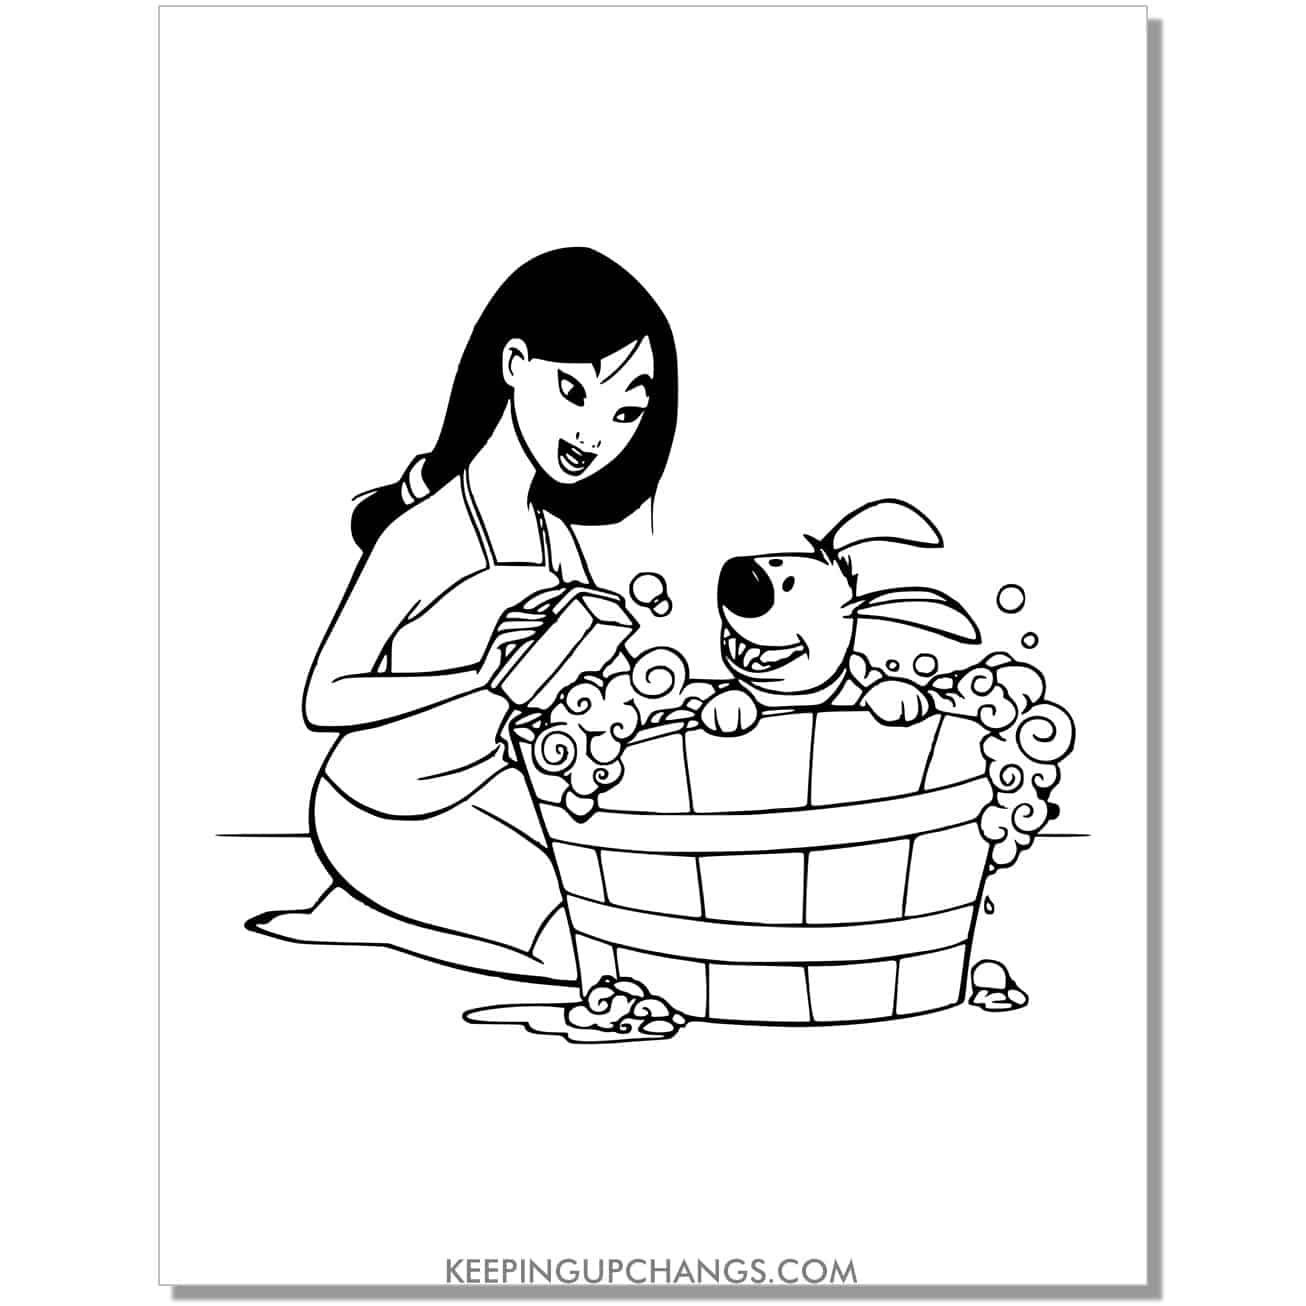 mulan bathing cute dog little brother coloring page.